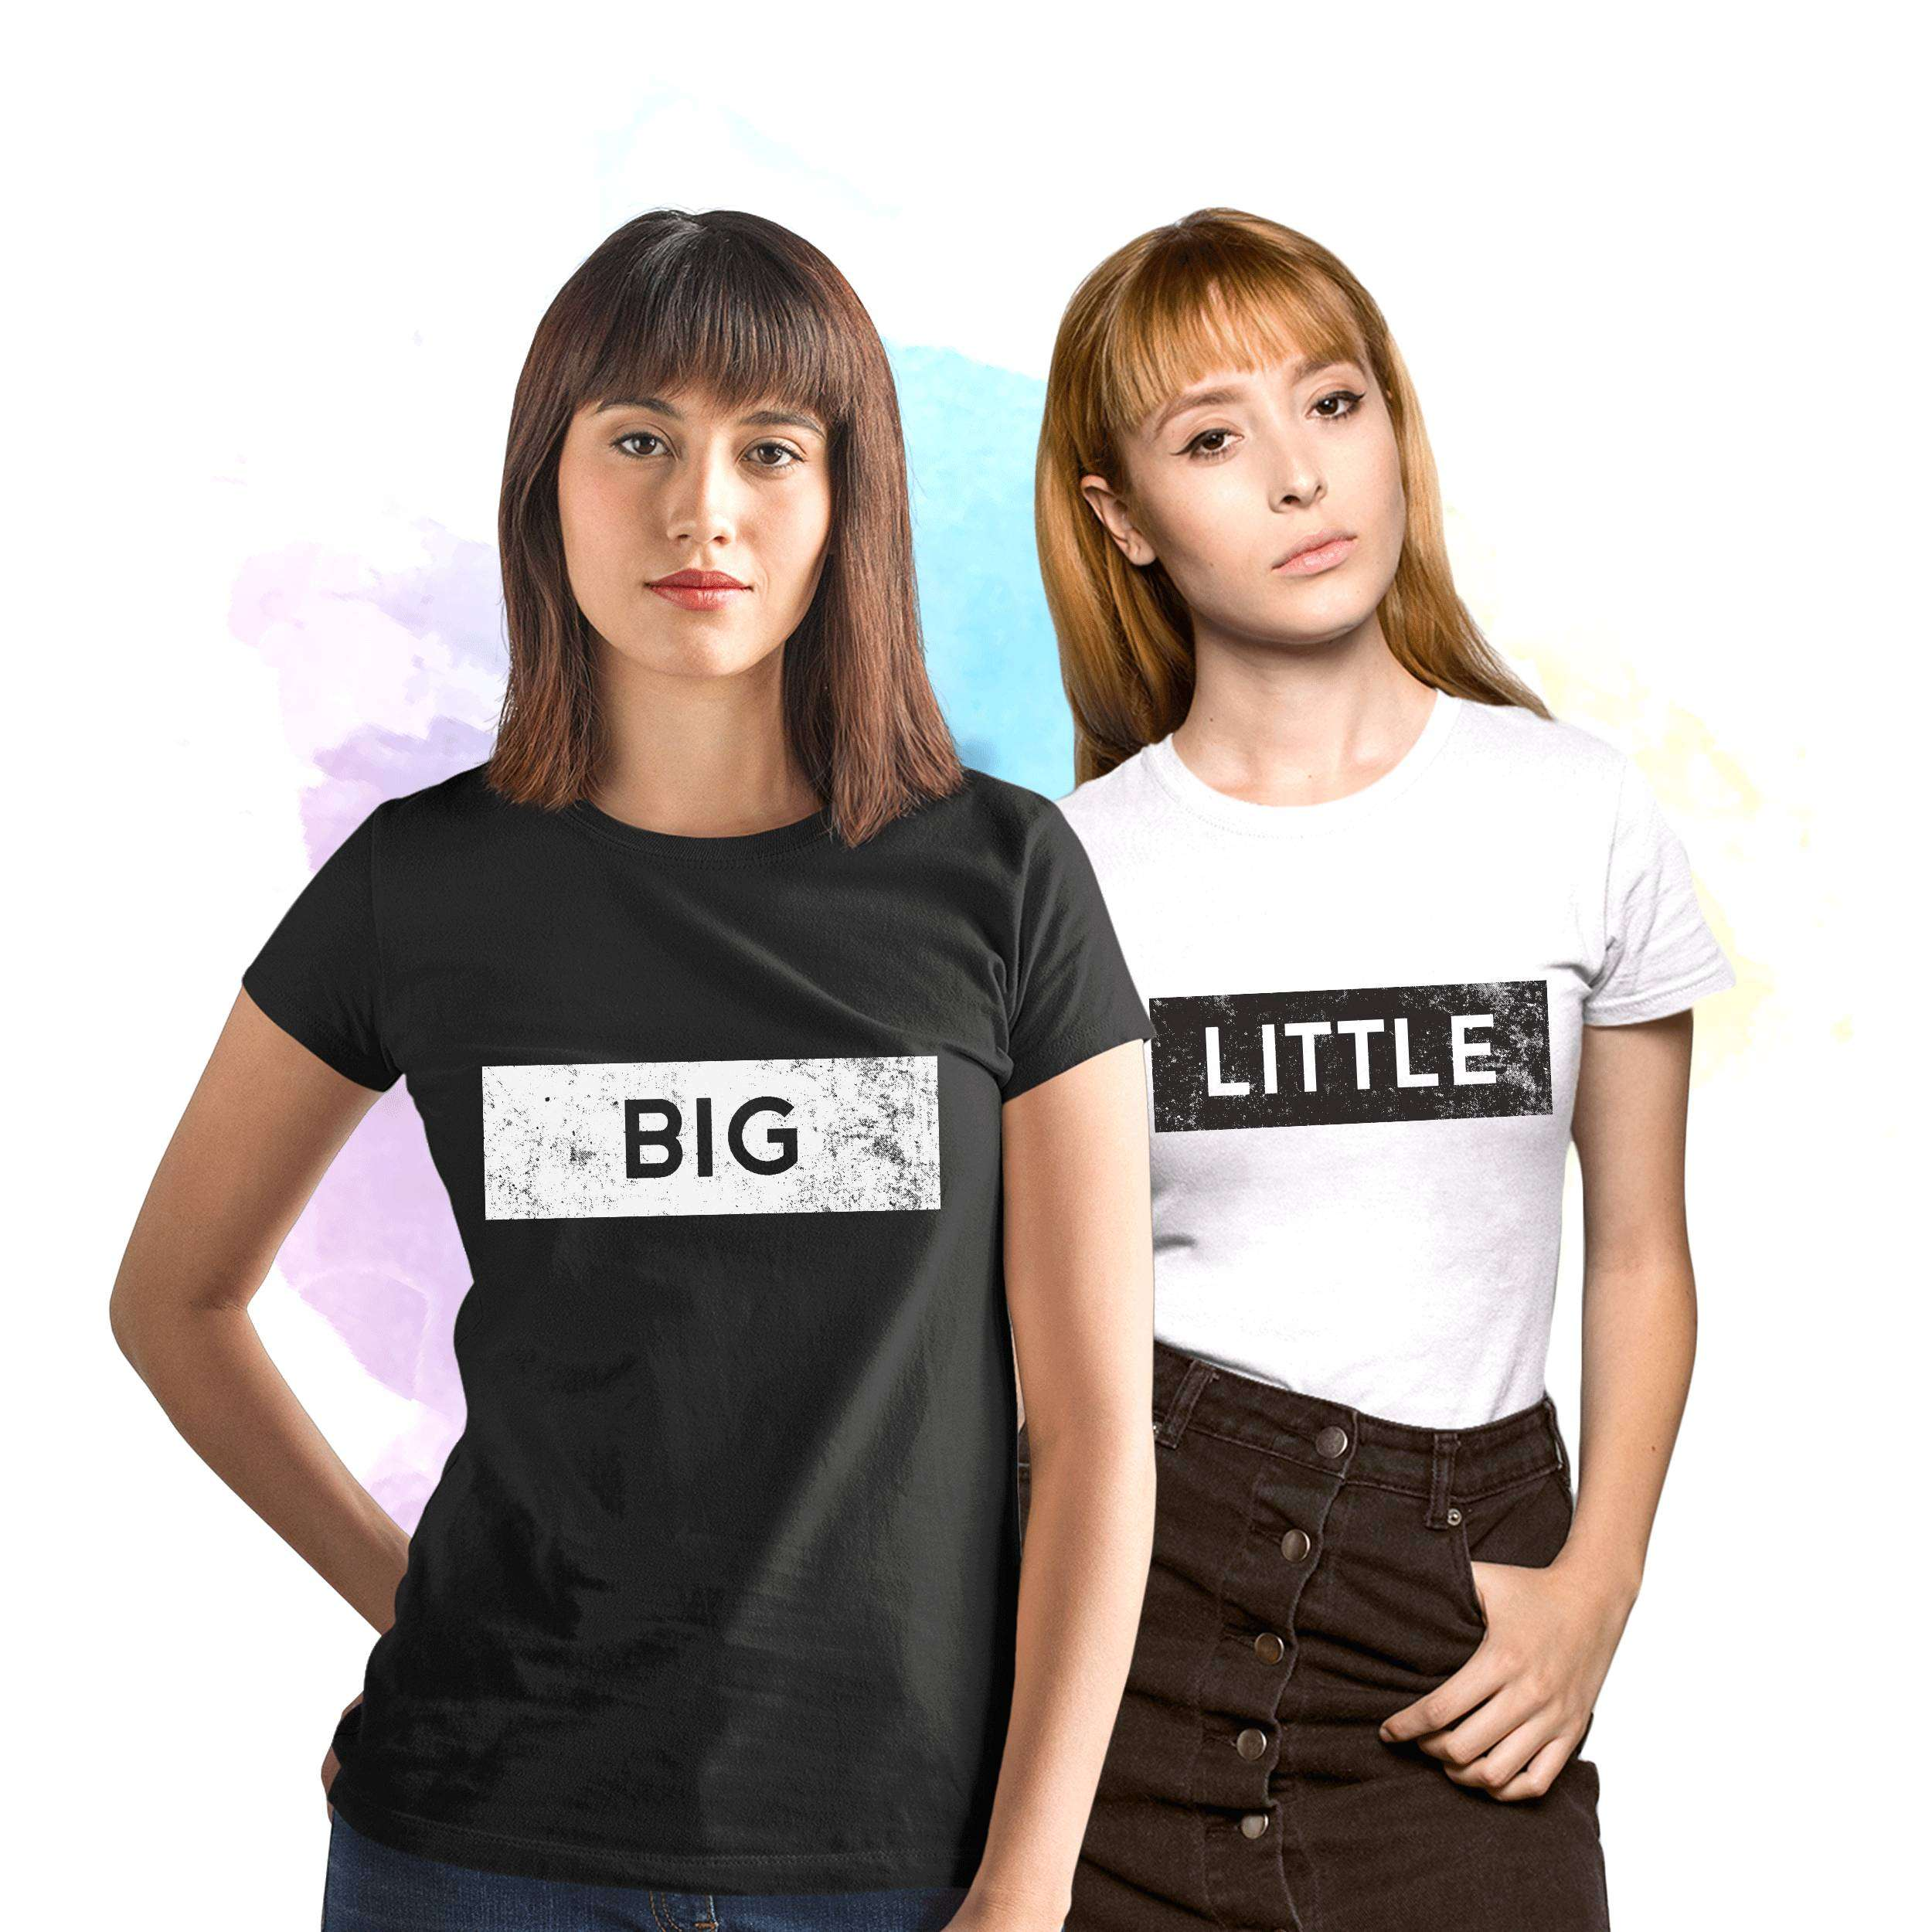 aed8b7a25 Big Little Reveal, Sorority Shirts, Textured, Best Friends Shirts